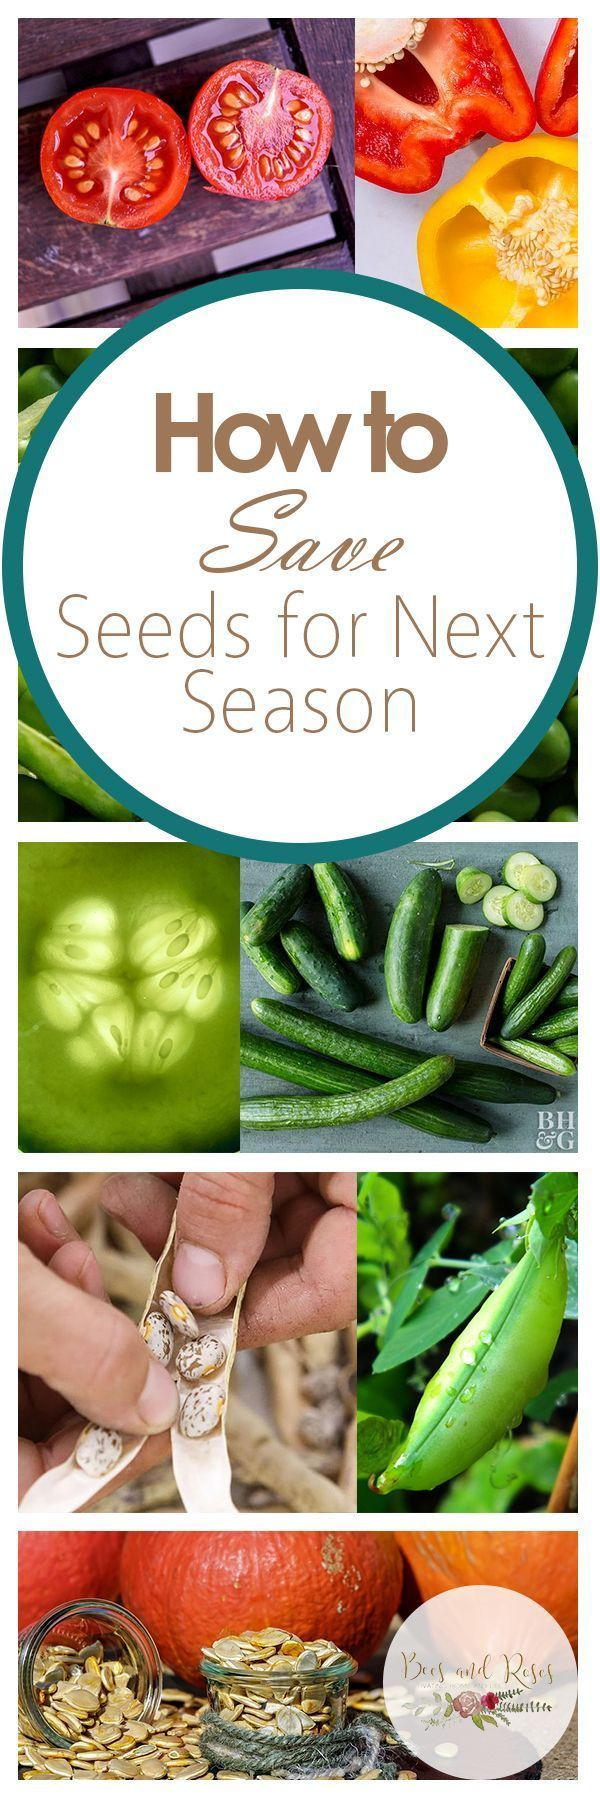 How to Save Seeds for Next Season| Save Seeds, How to Save Seeds, Gardening, Gardening Tips and Tricks, Indoor Gardening, Seasonal Gardening, Winter Gardening, Popular Pin #Gardening #WinterGardening #indoorgardening